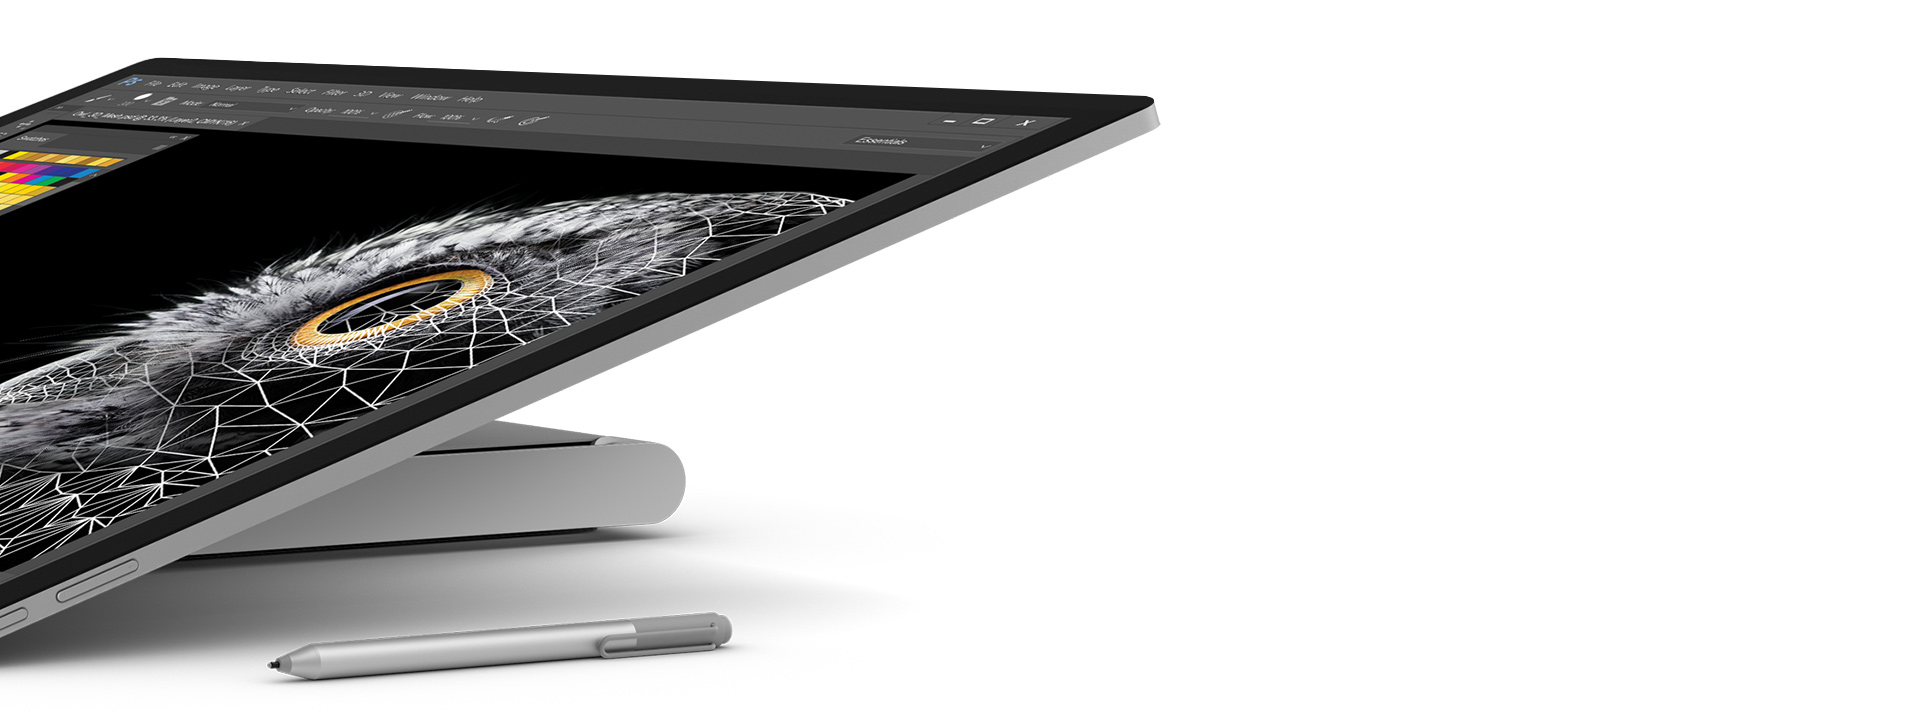 Close-up van Surface Studio in studiomodus met Surface-pen ernaast.